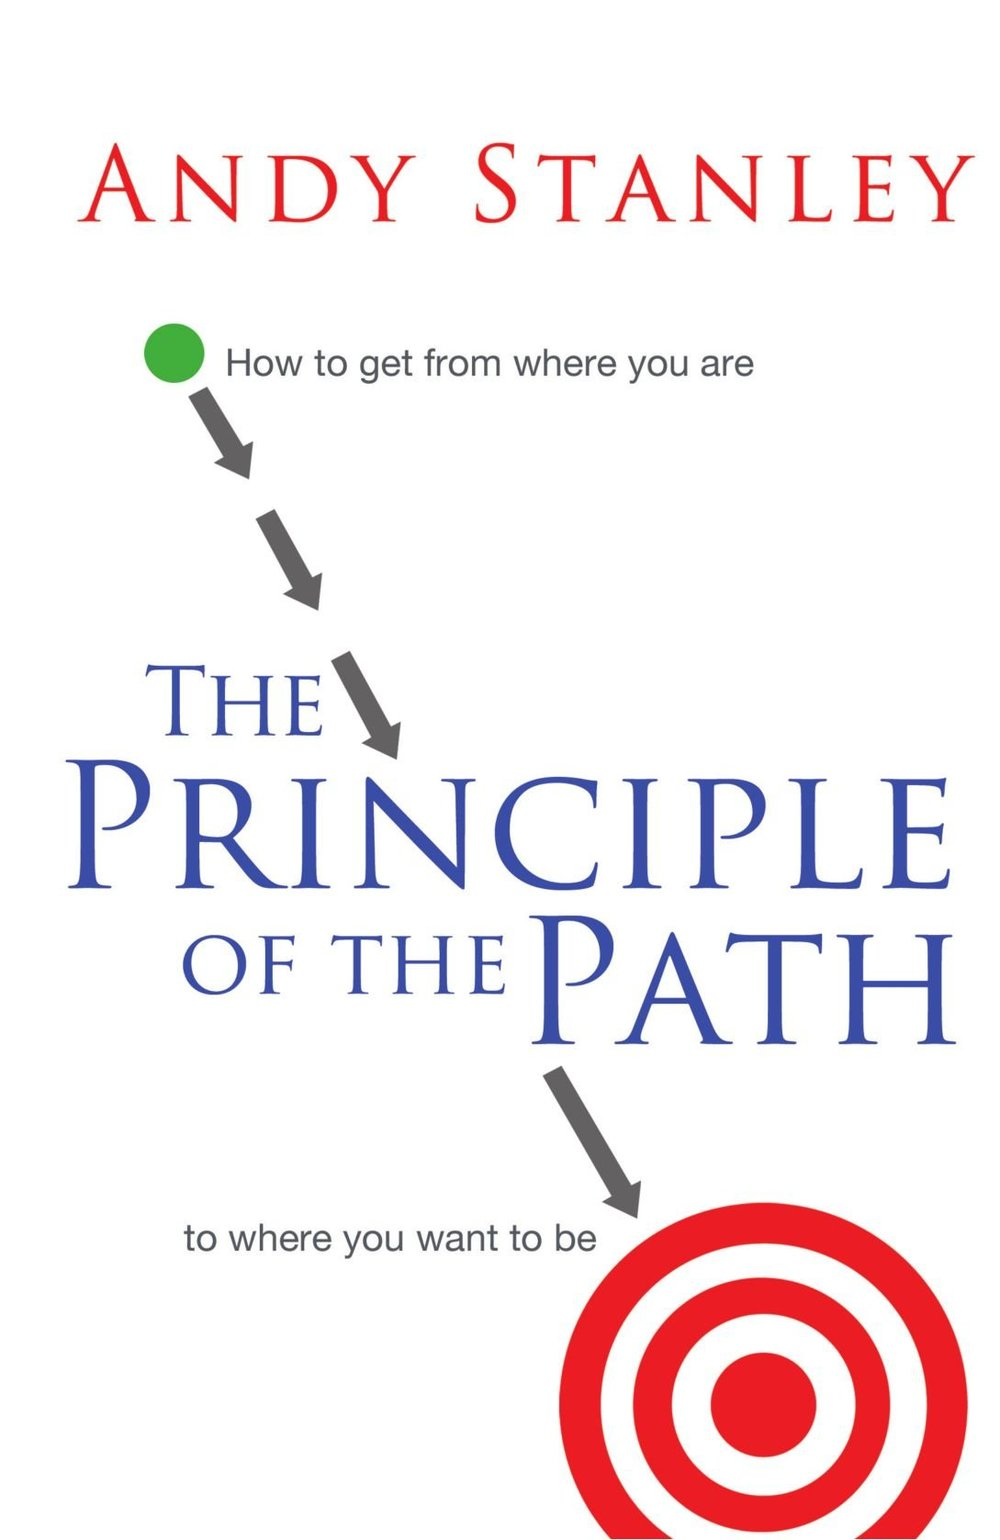 Stanley Principle of Path.jpg